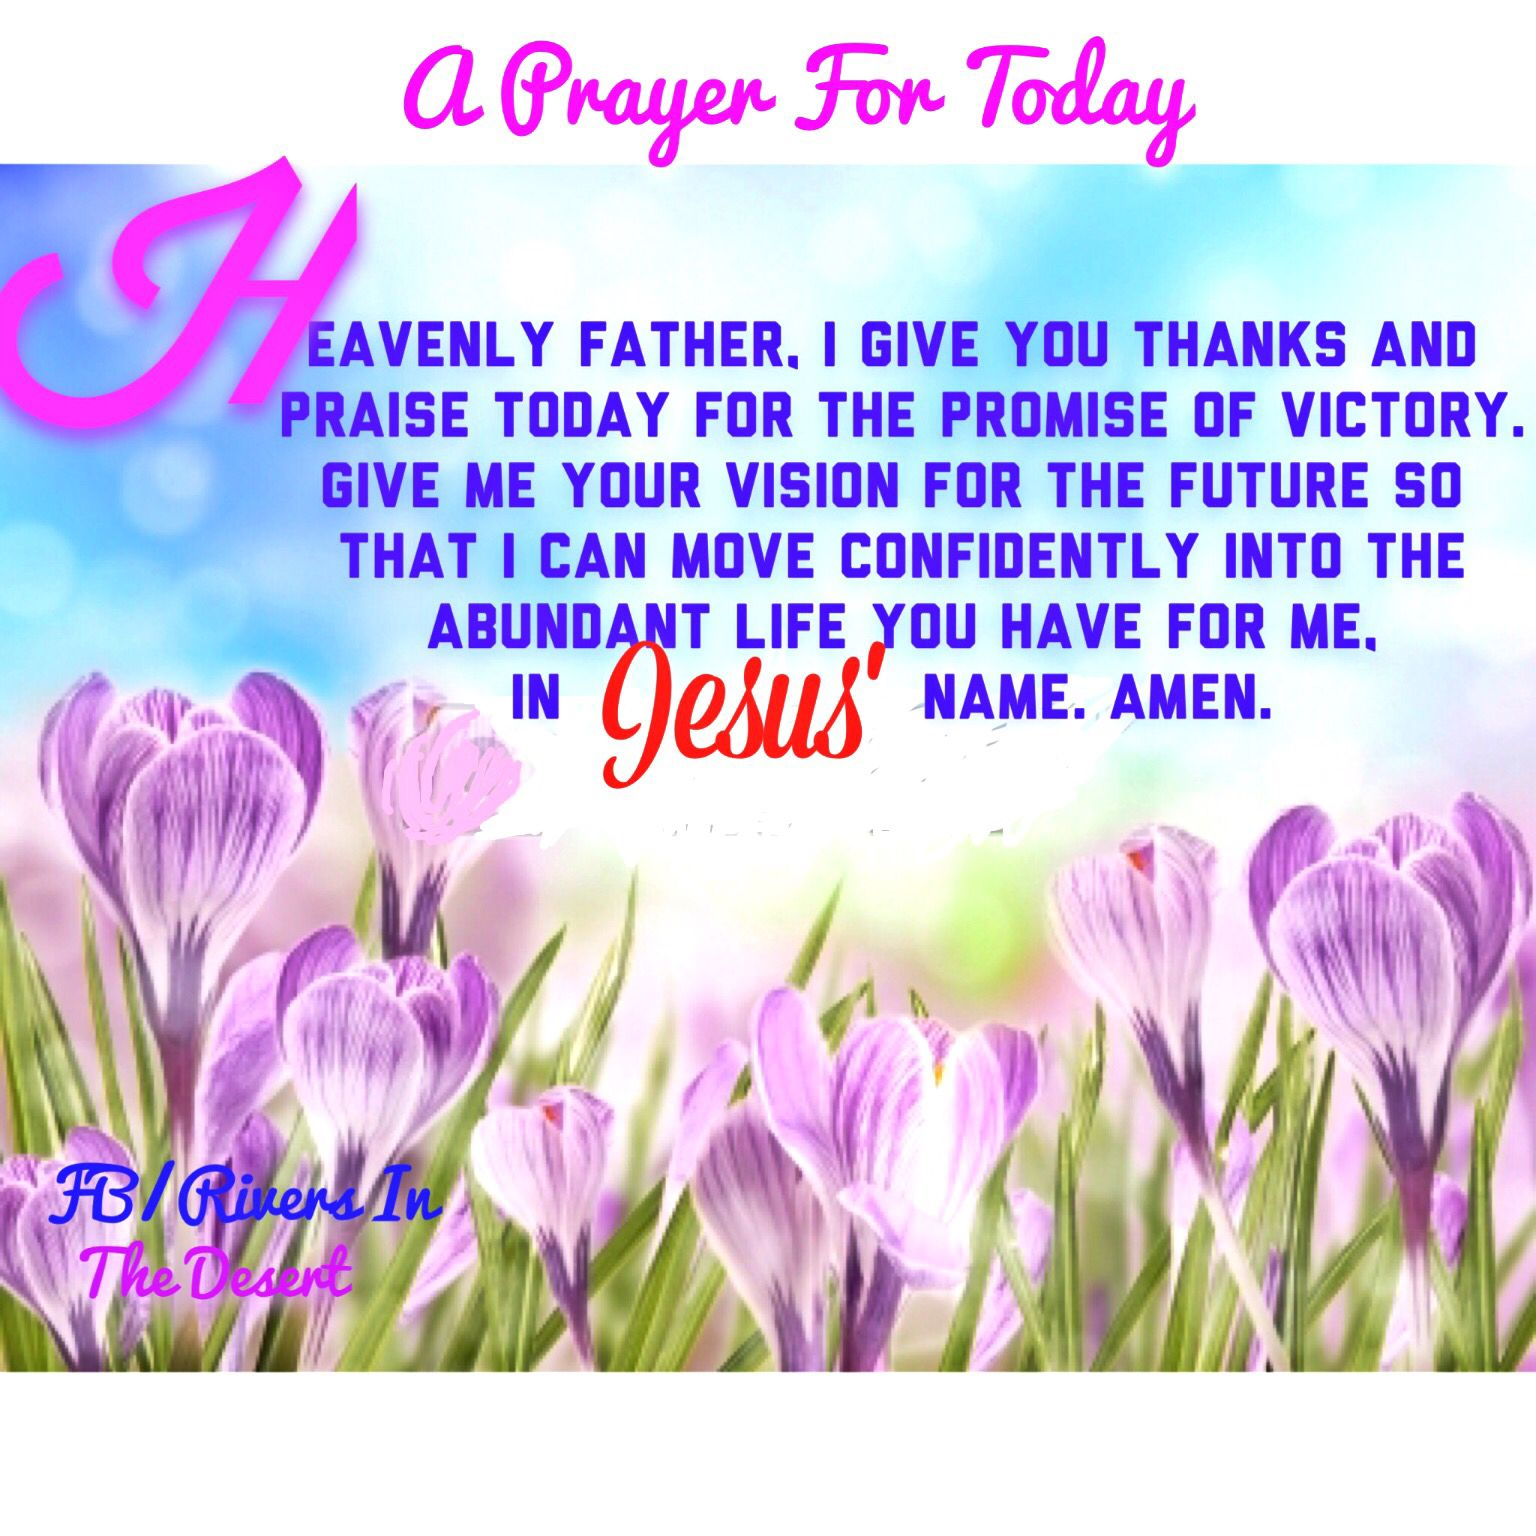 A prayer for today.